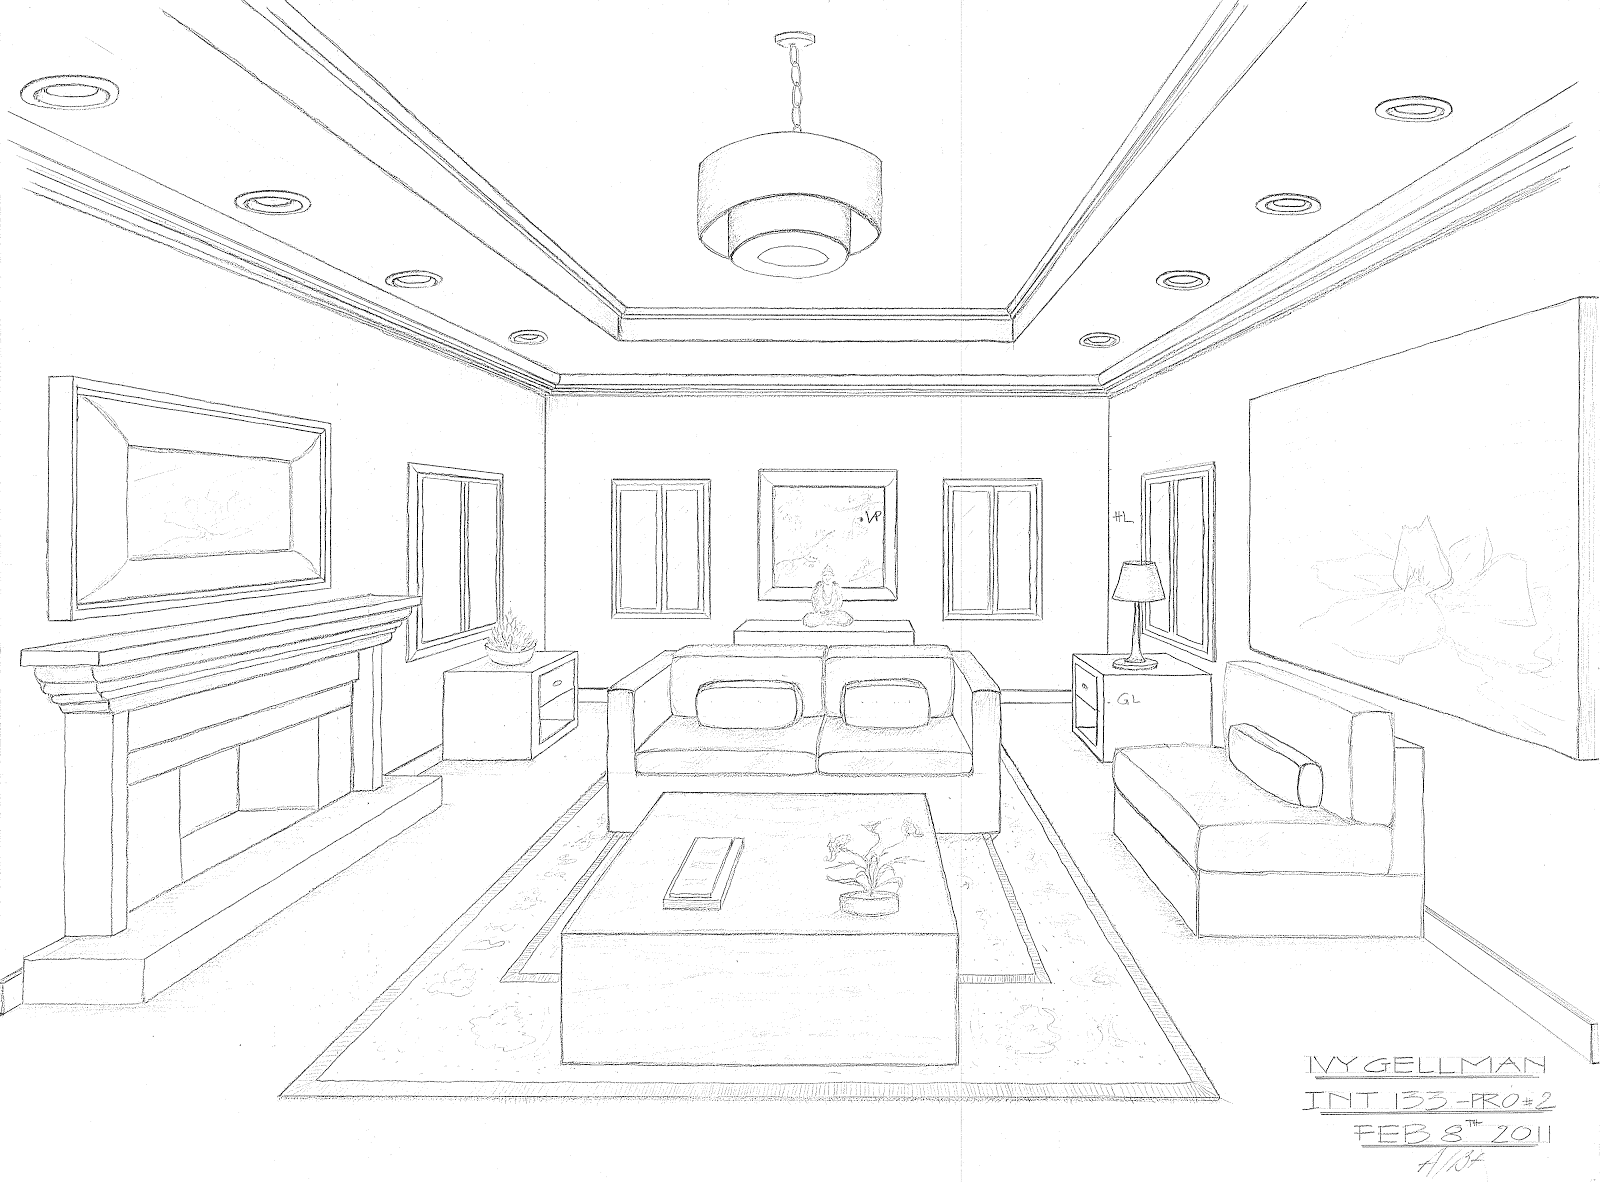 Interior design perspective drawing - In drowing room interiar design ...